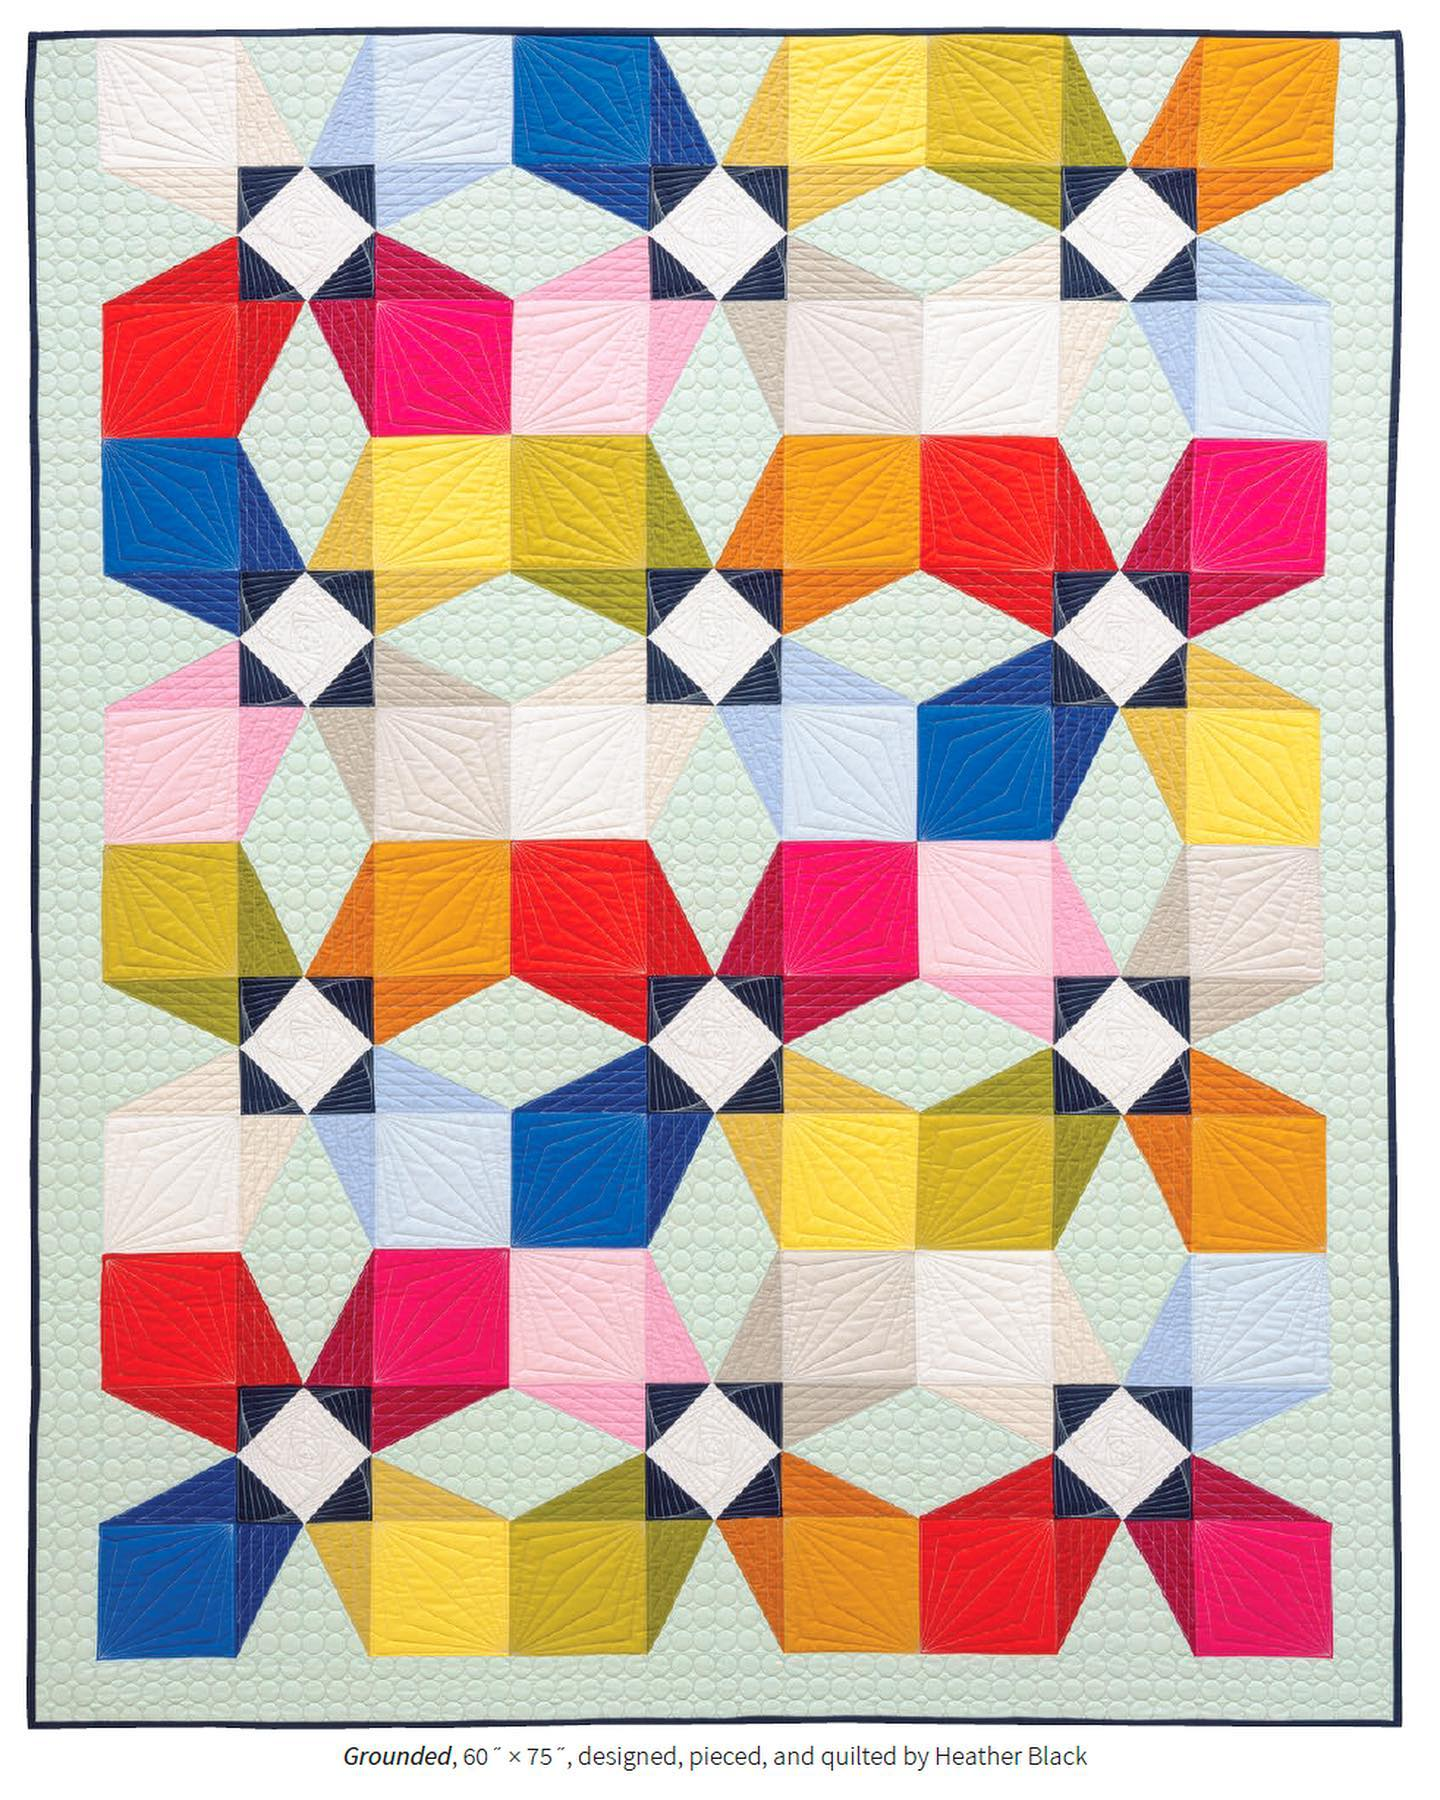 Grounded Quilt by Heather Black